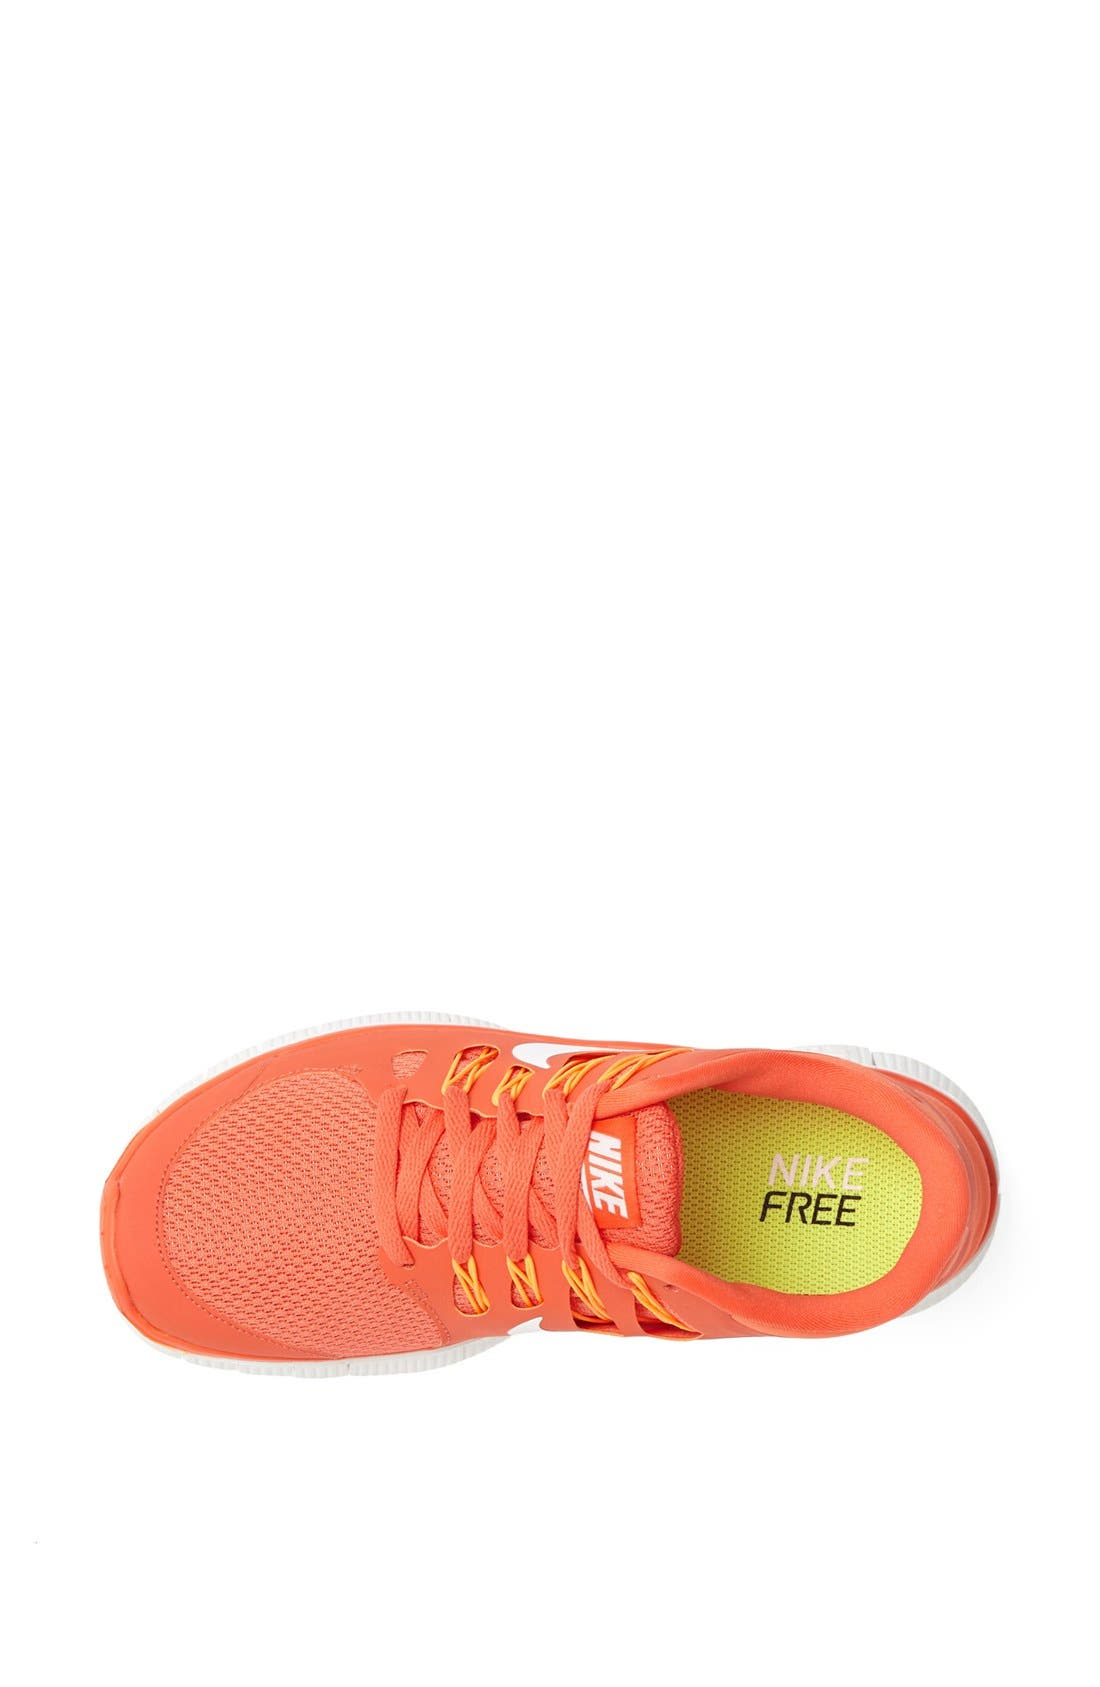 Alternate Image 3  - Nike 'Free 5.0' Running Shoe (Women)